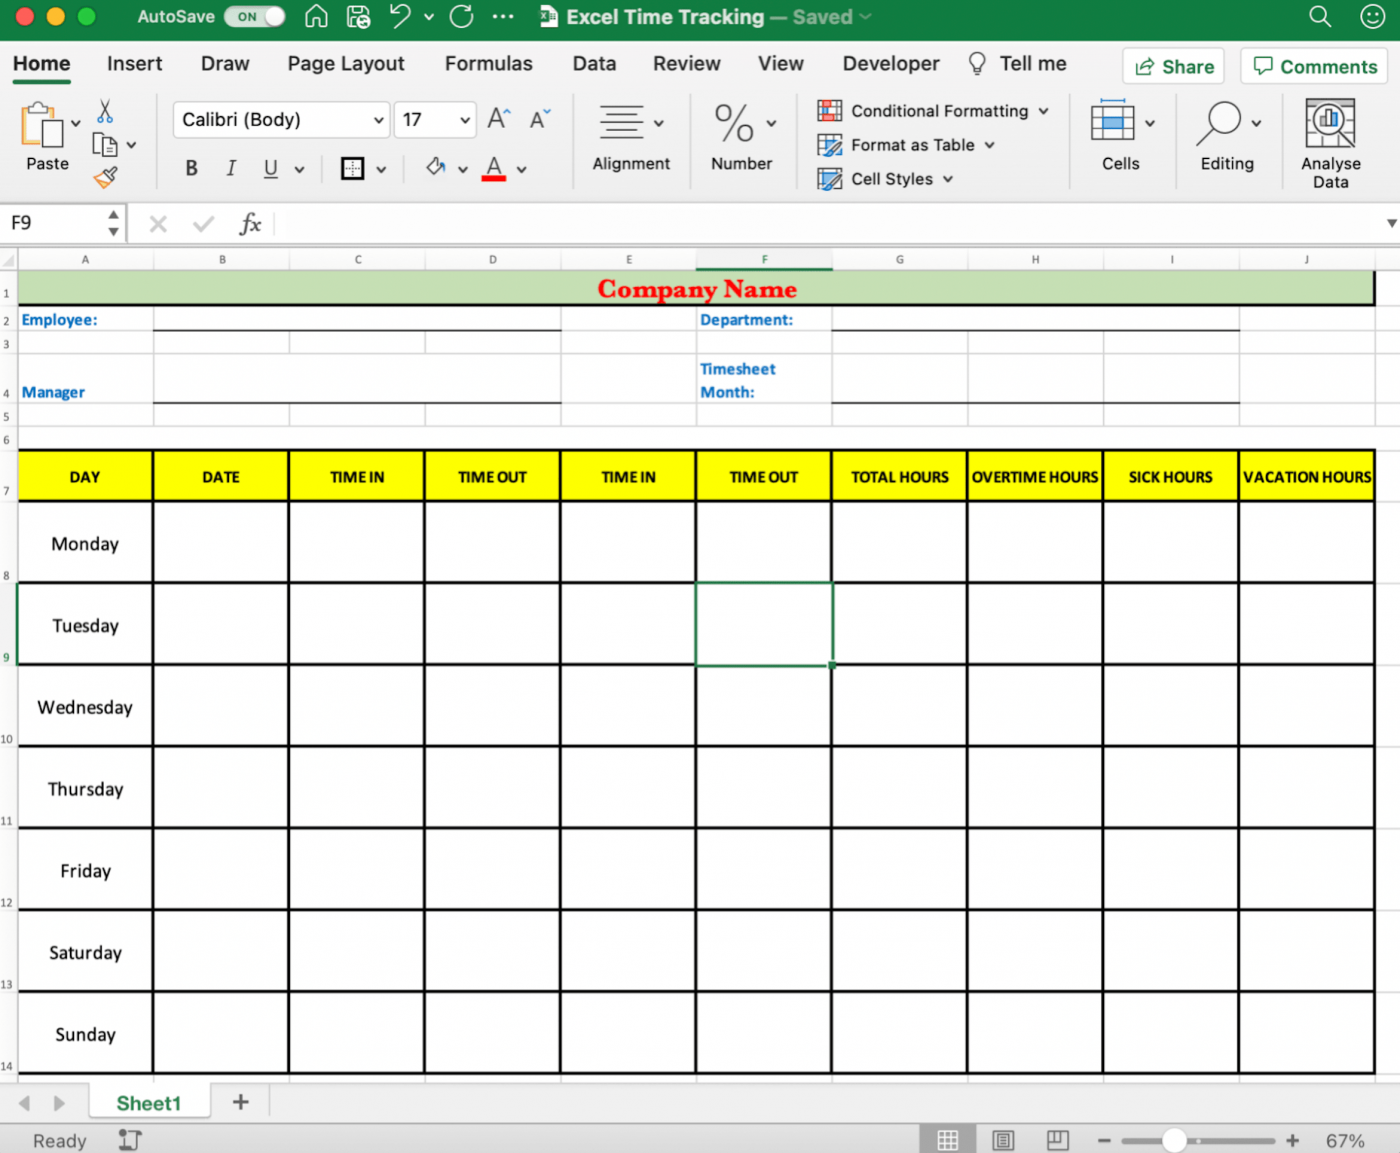 Time tracking spreadsheet in Excel